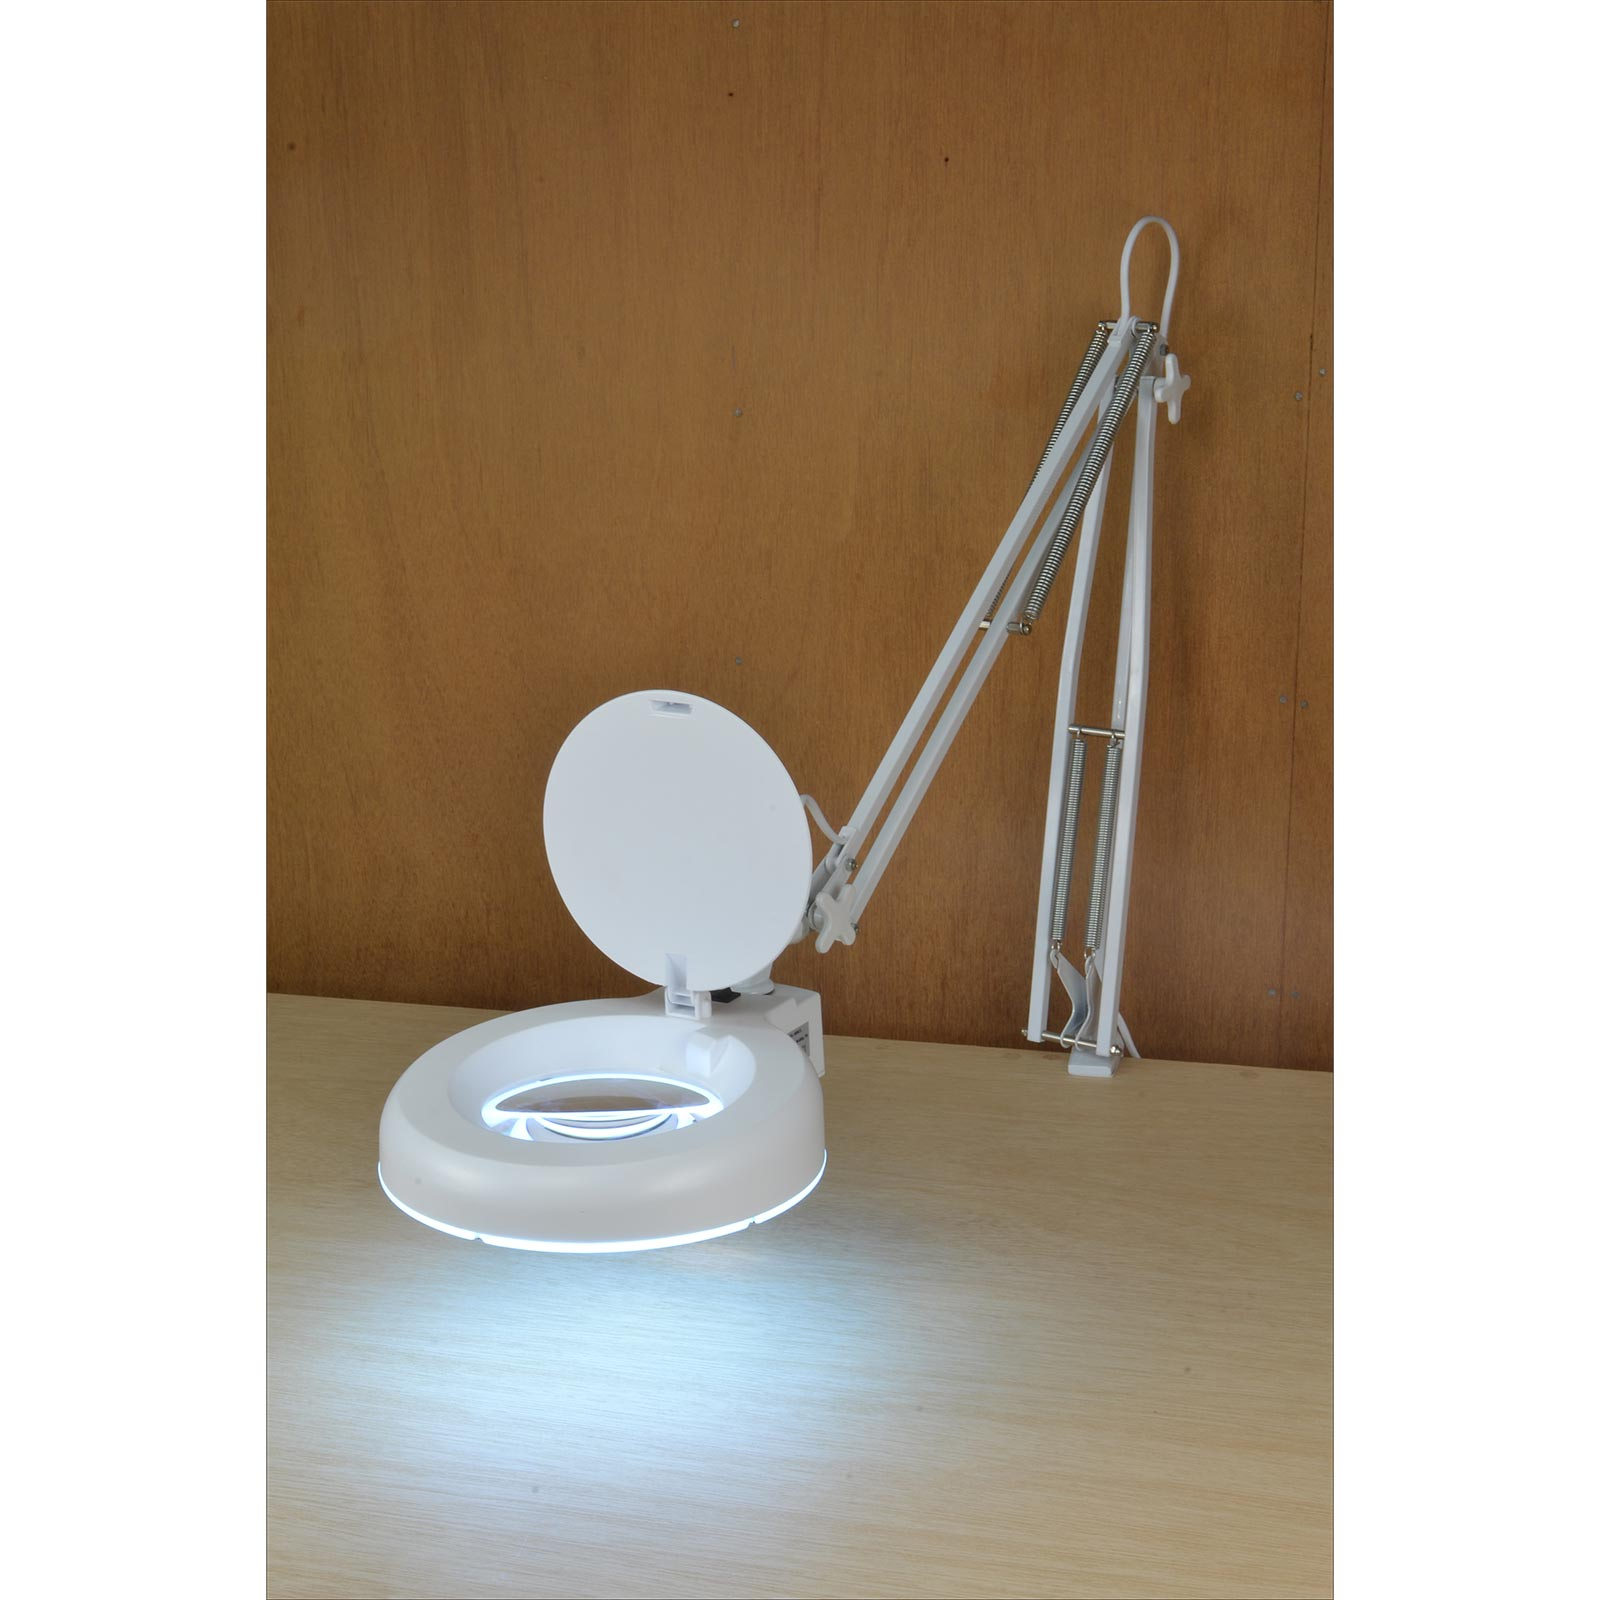 Articulated LED Lamp with Magnifier